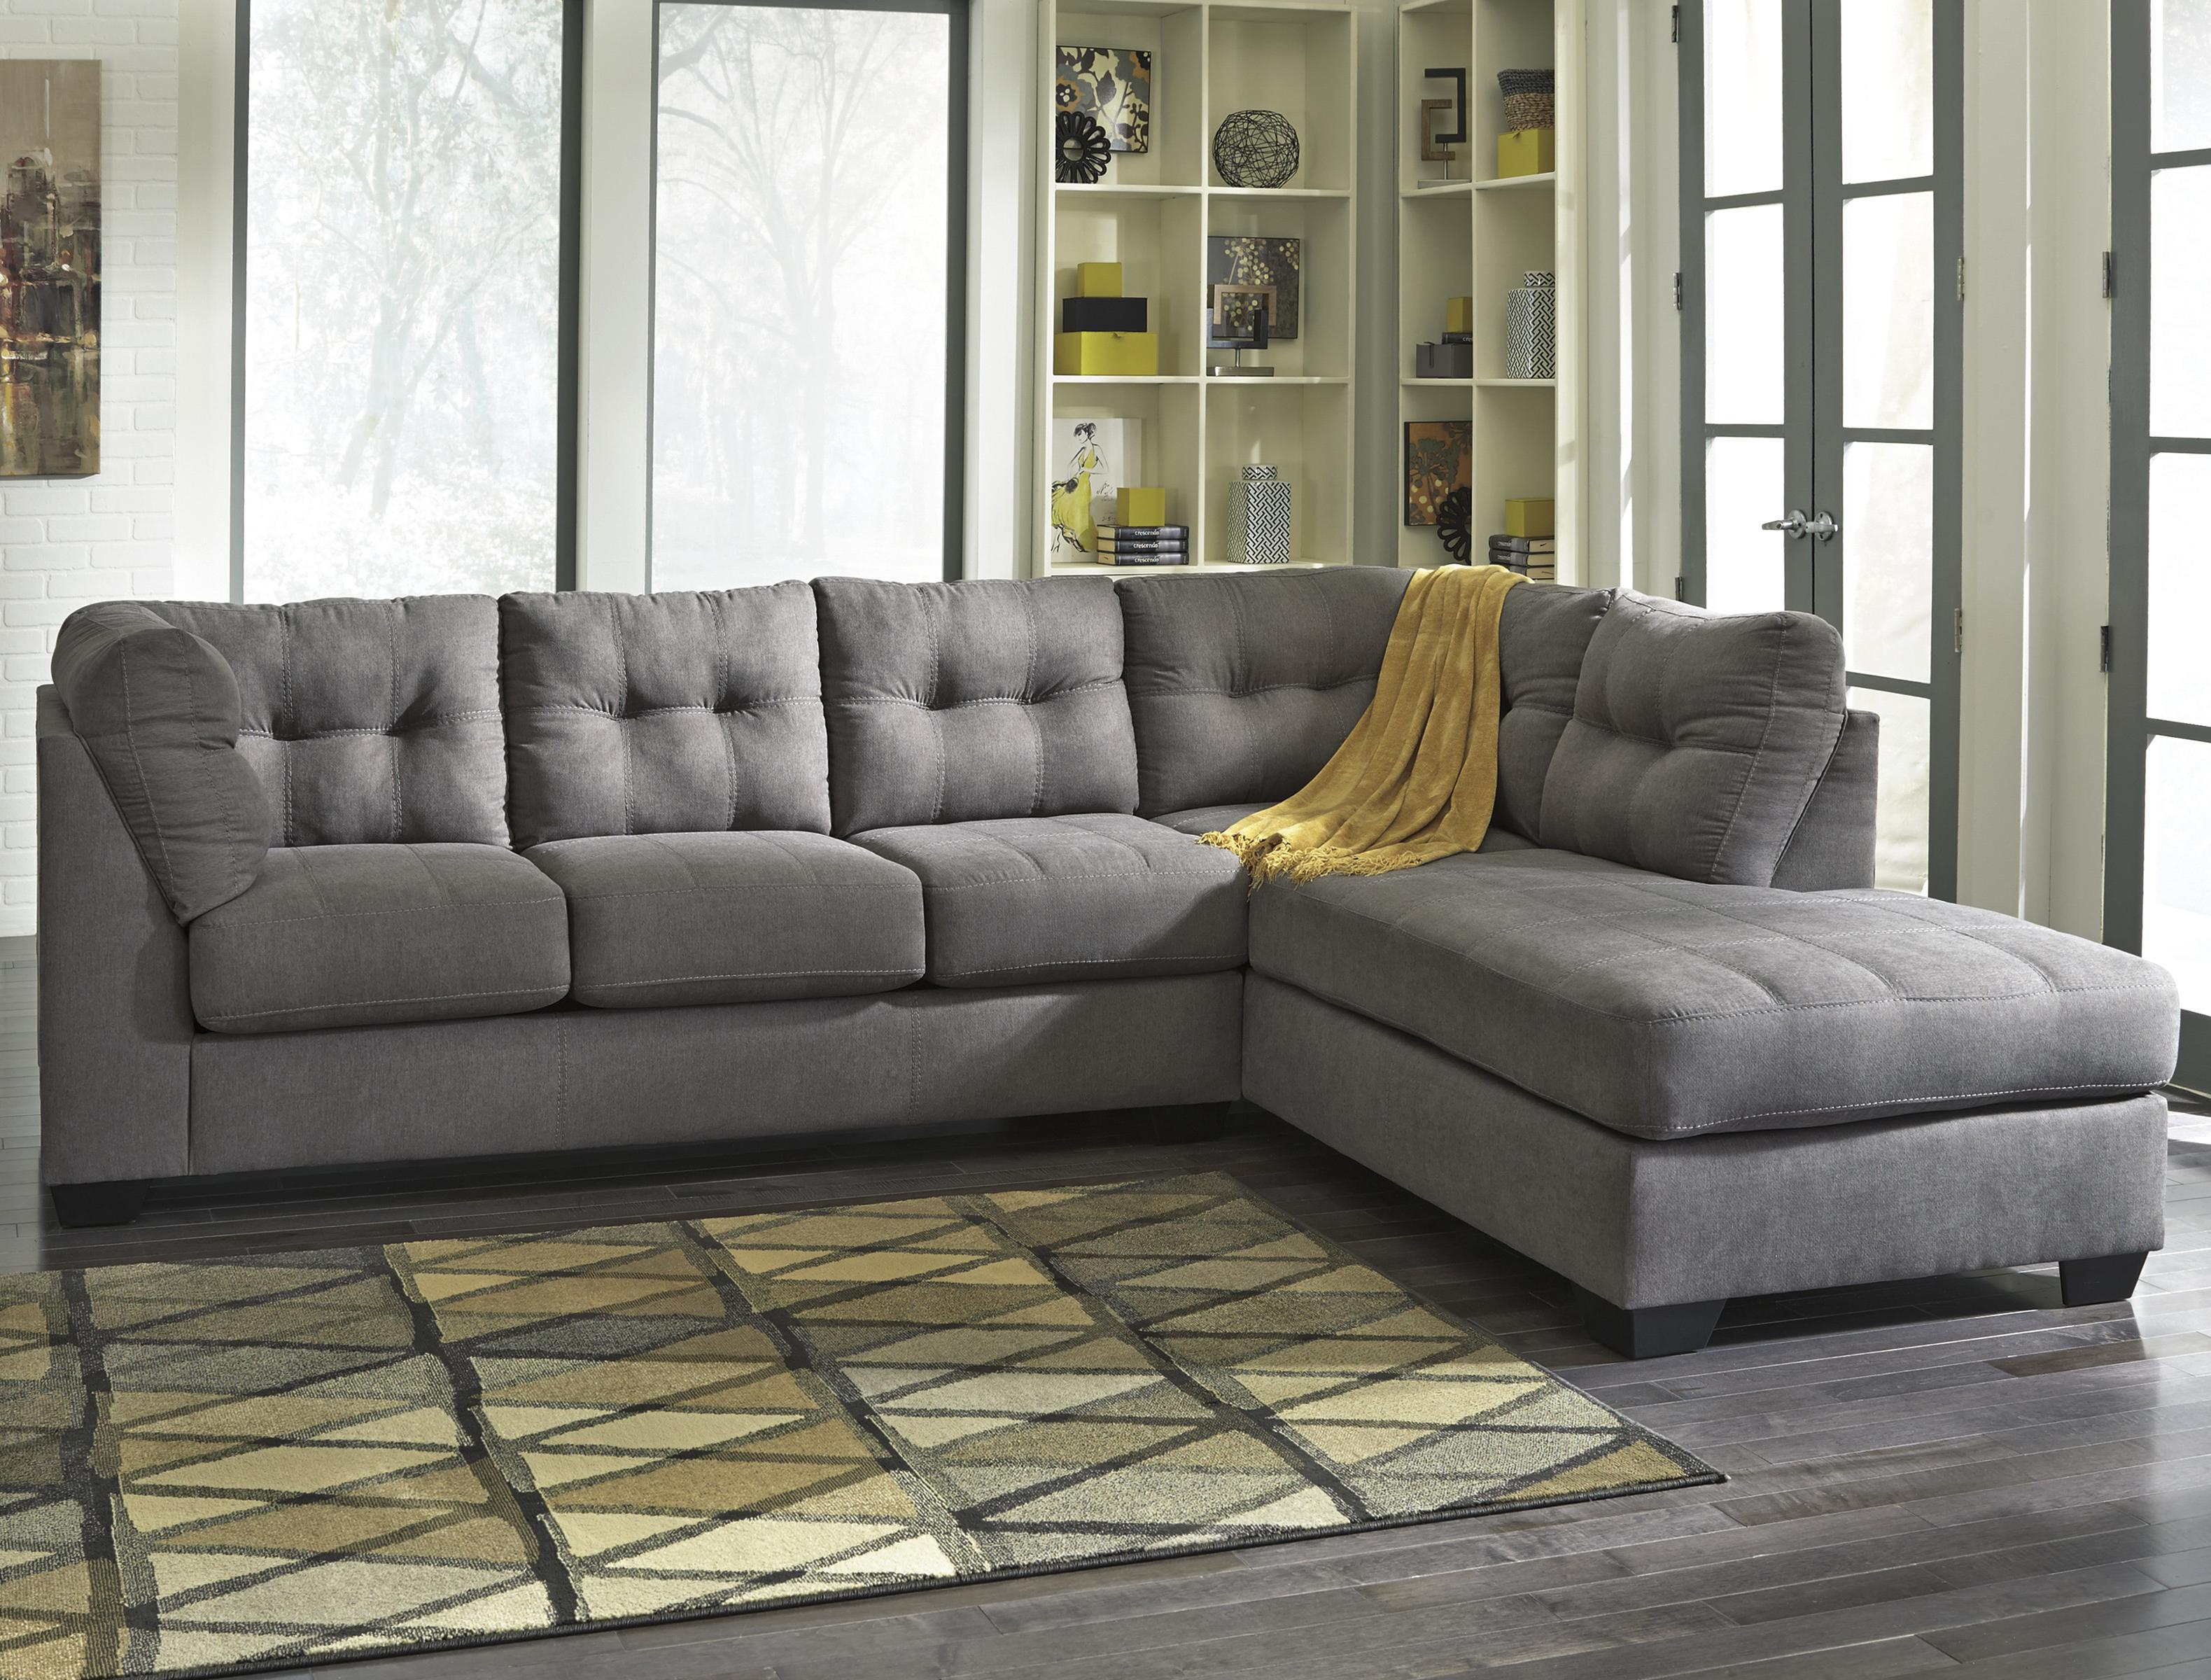 Couches Sleeper Maier Charcoal 2 Piece Sectional W Sleeper Sofa Right Chaise By Benchcraft At Rooms And Rest